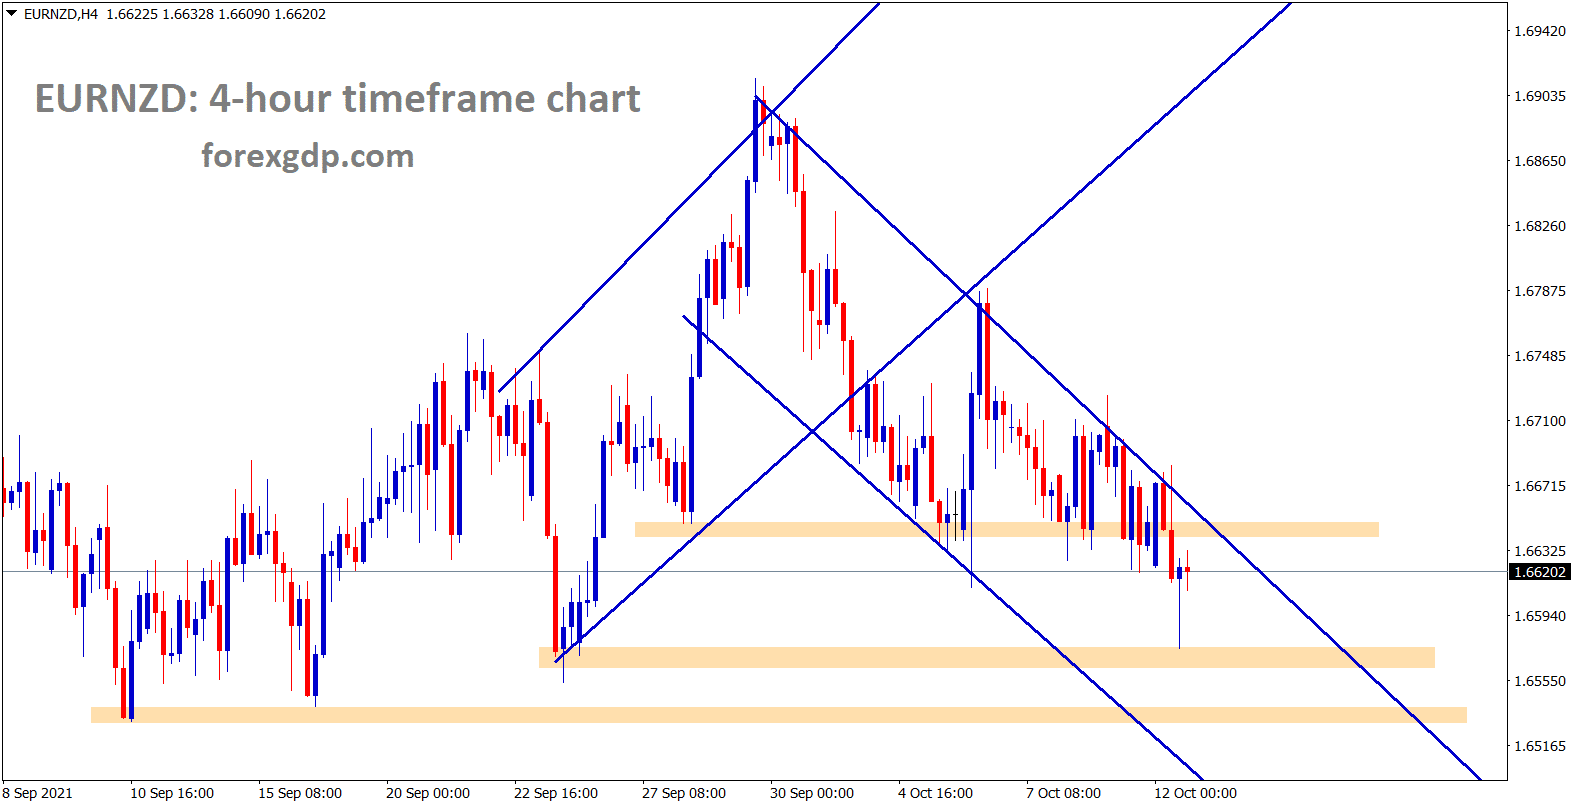 EURNZD is moving down in a descending channel breaking the lows continuously